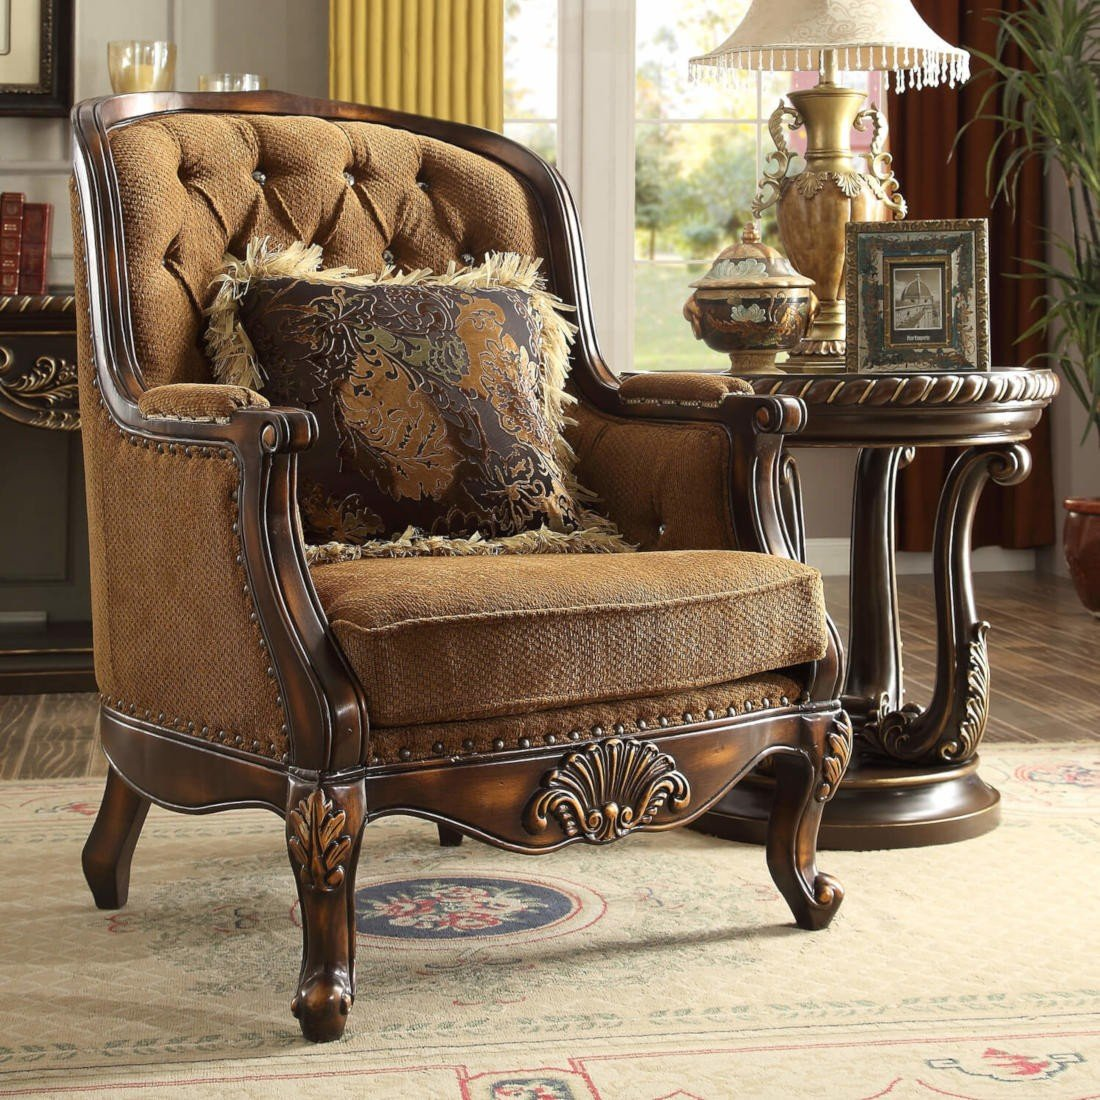 Traditional Luxury Royal HD-9344 Chair in Brown by Homey Design